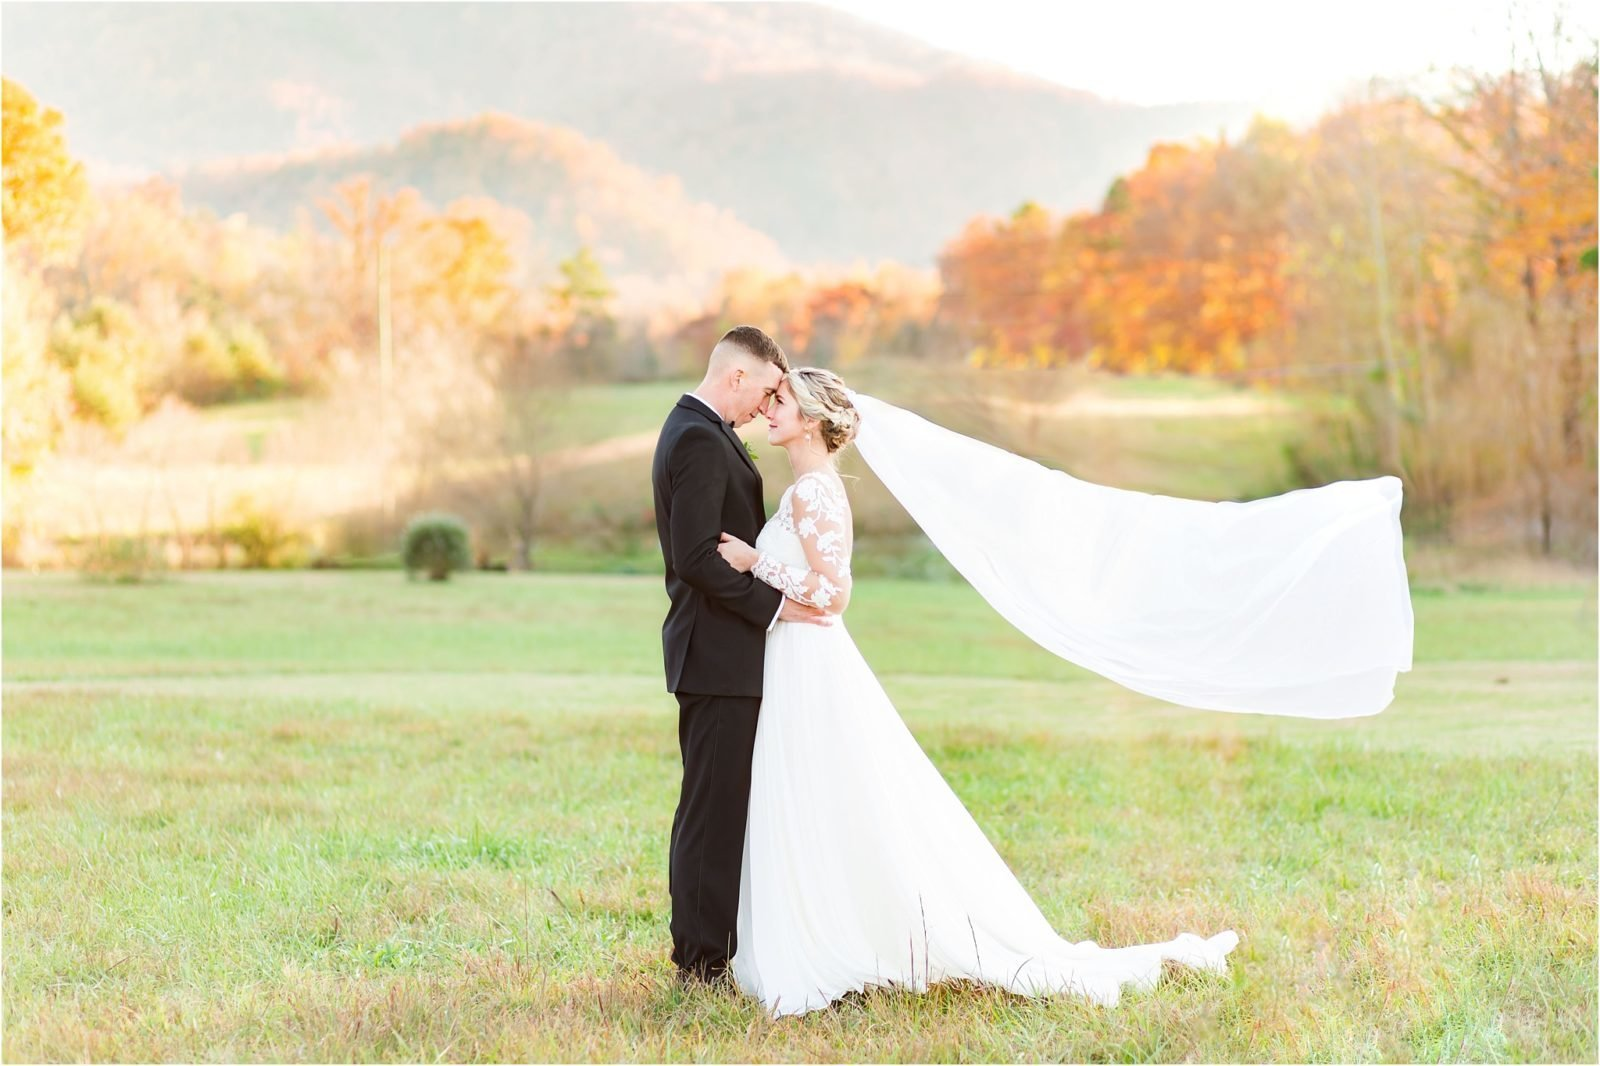 akingslodgeweddingpigeonforgeweddingsmokymountainsweddingmikayleeandian102109